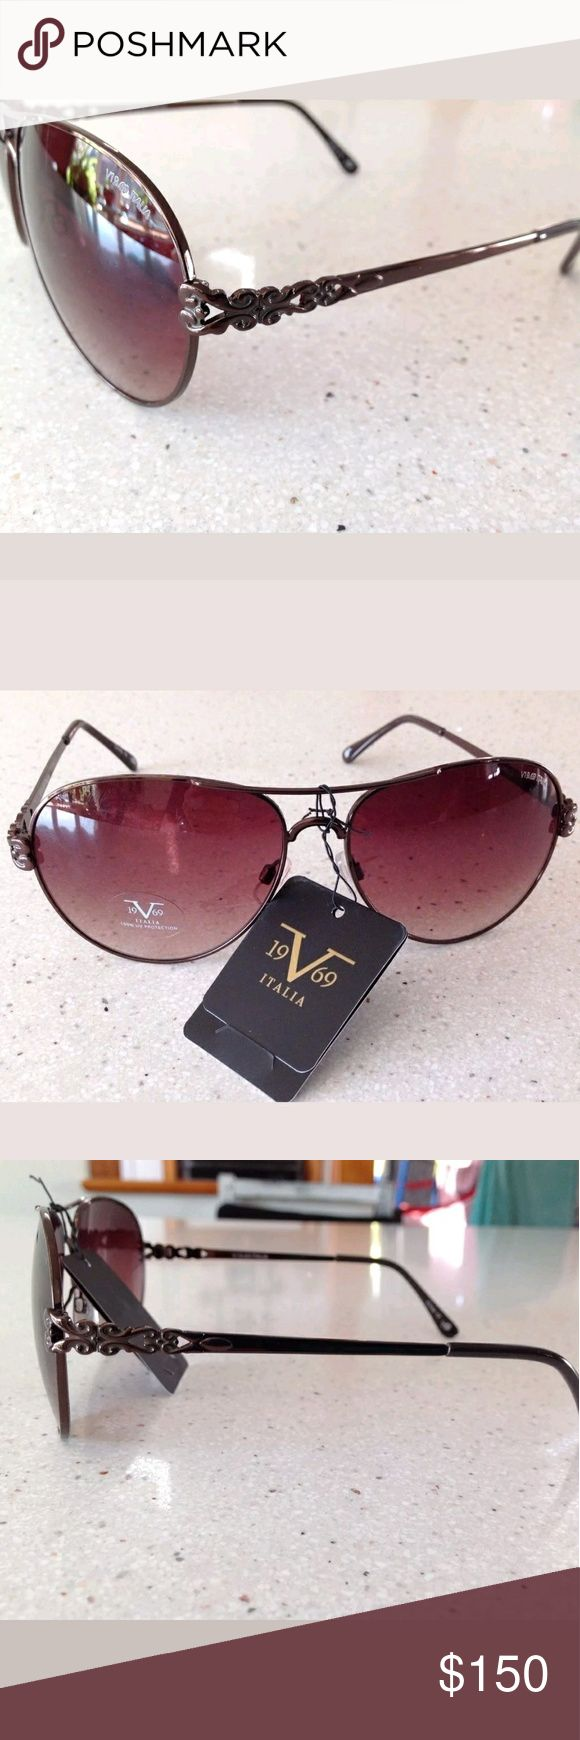 💥NWT💥 Versace Aviator Sunglasses These are new with tags. I no longer take offers. If you want a discount please use my bundle option. Please see all photos for full description and details. Versace Accessories Sunglasses